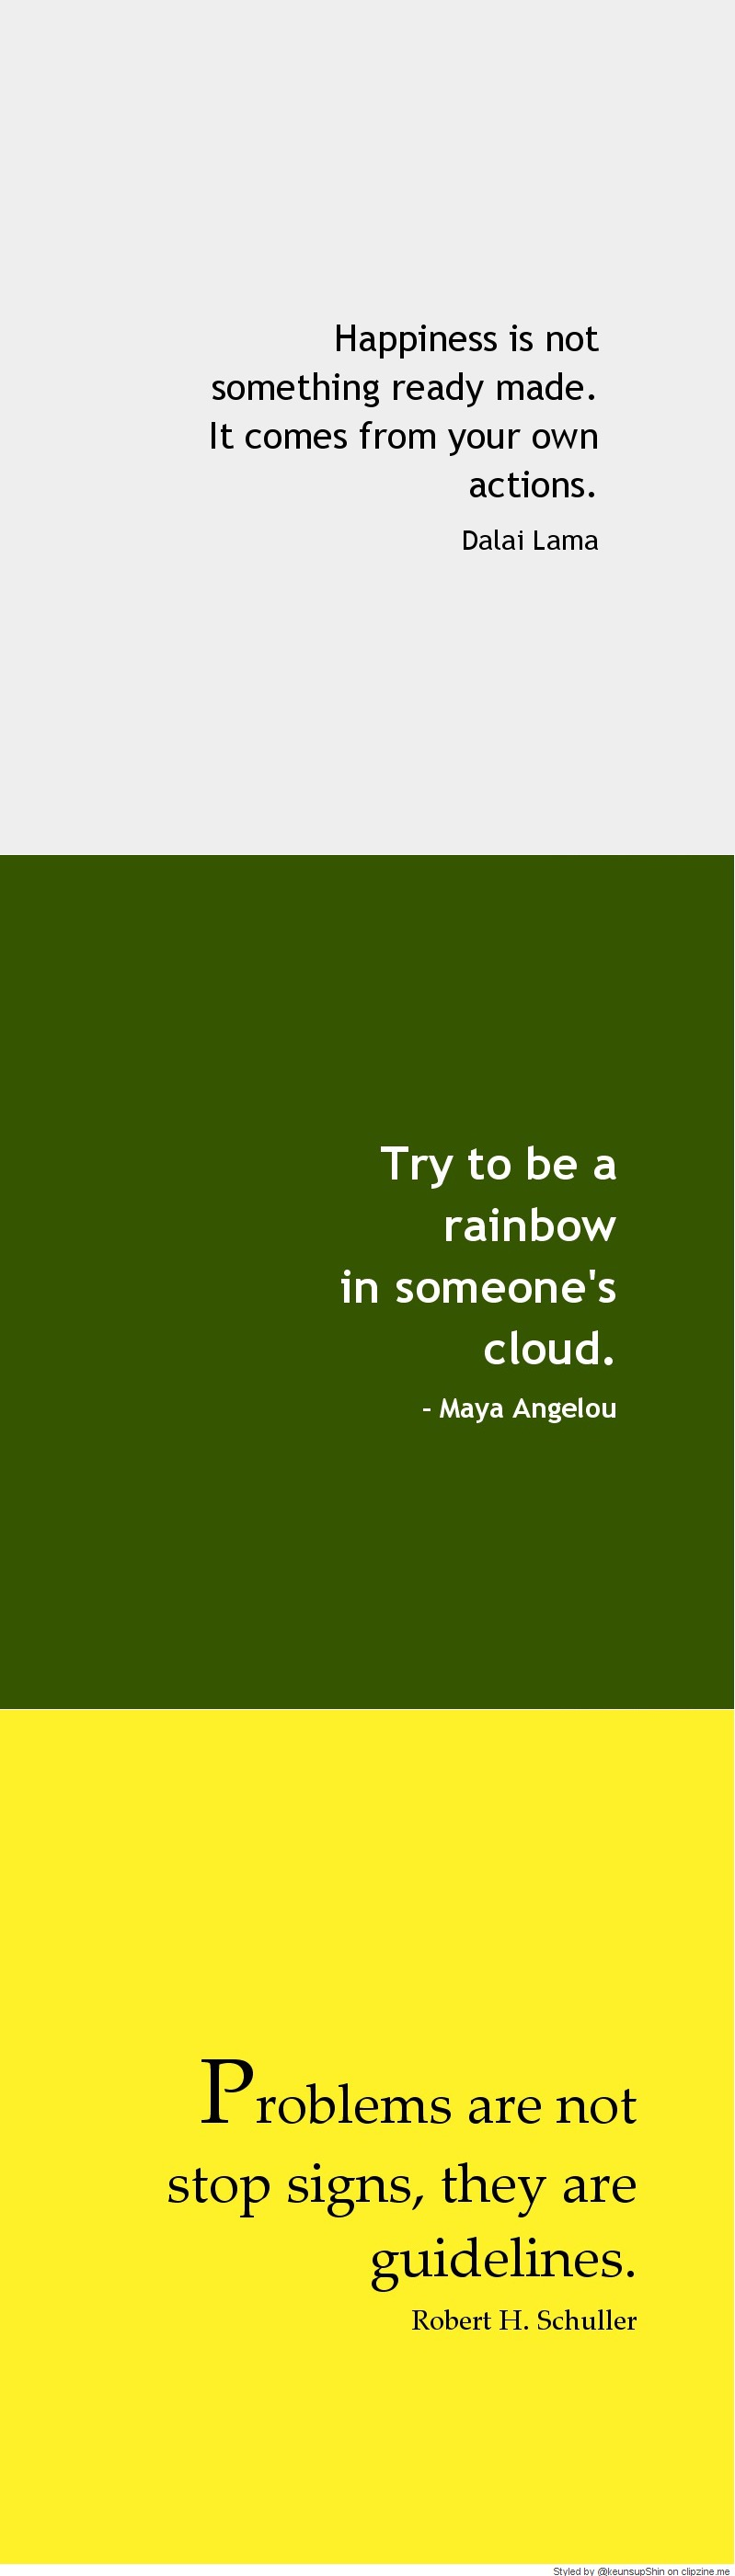 daily inspirational quotes sayings pinterest shops